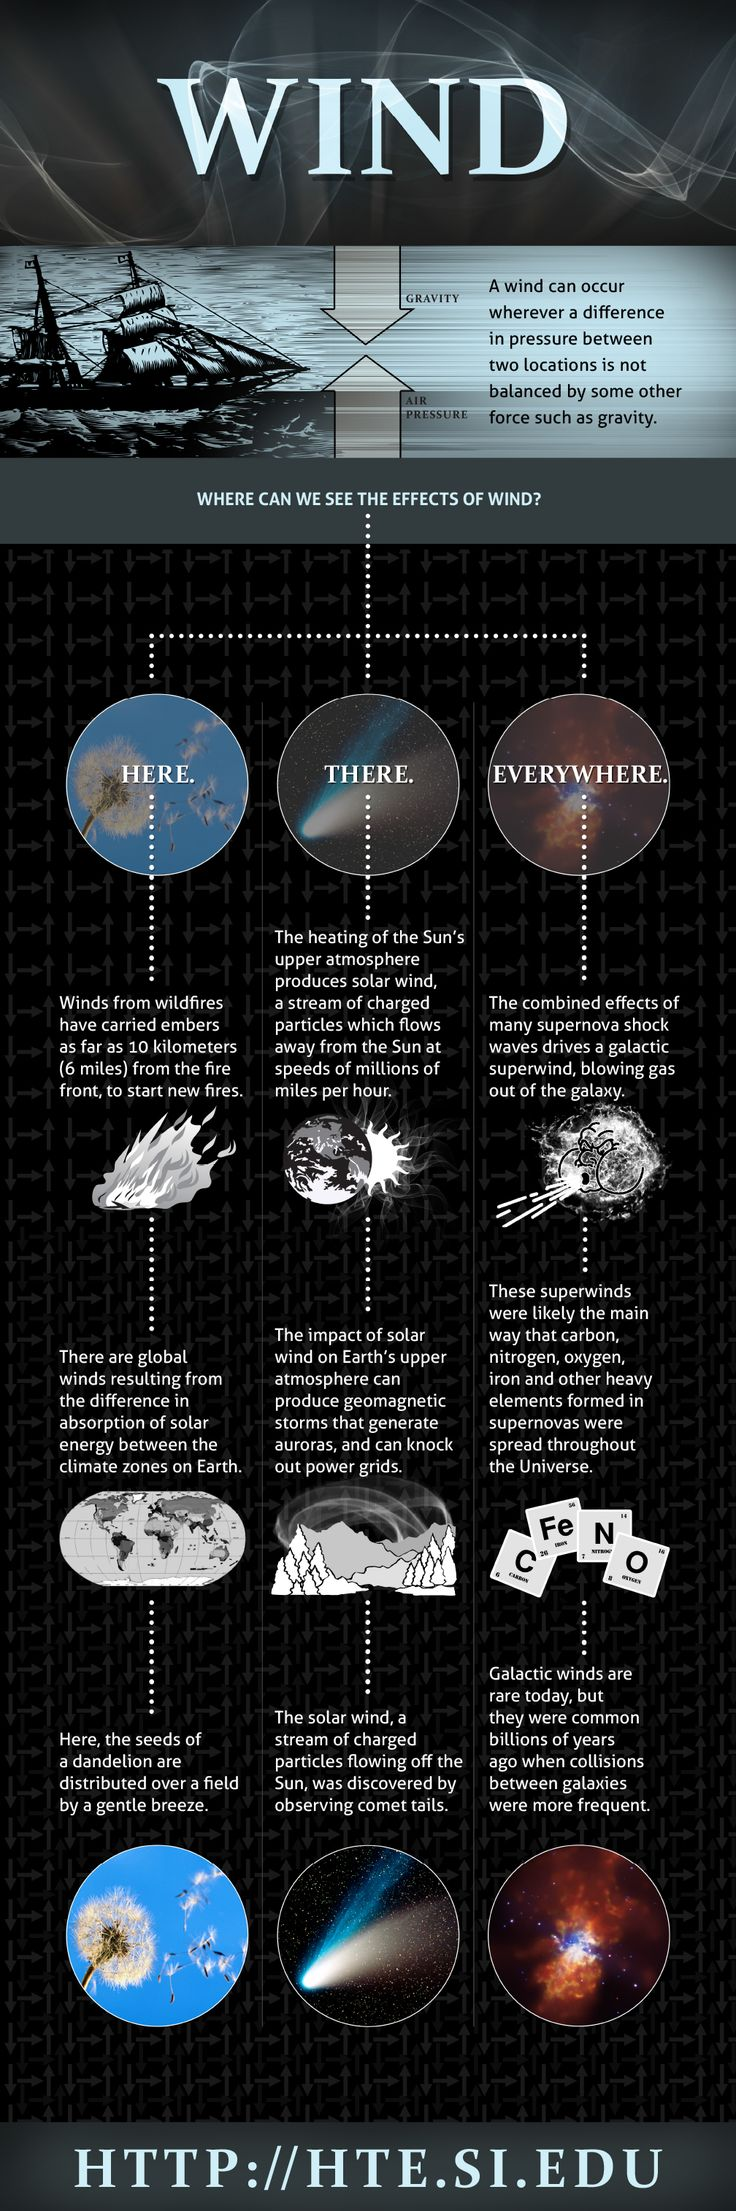 Chandra X-ray Observatory - Infographic - Wind